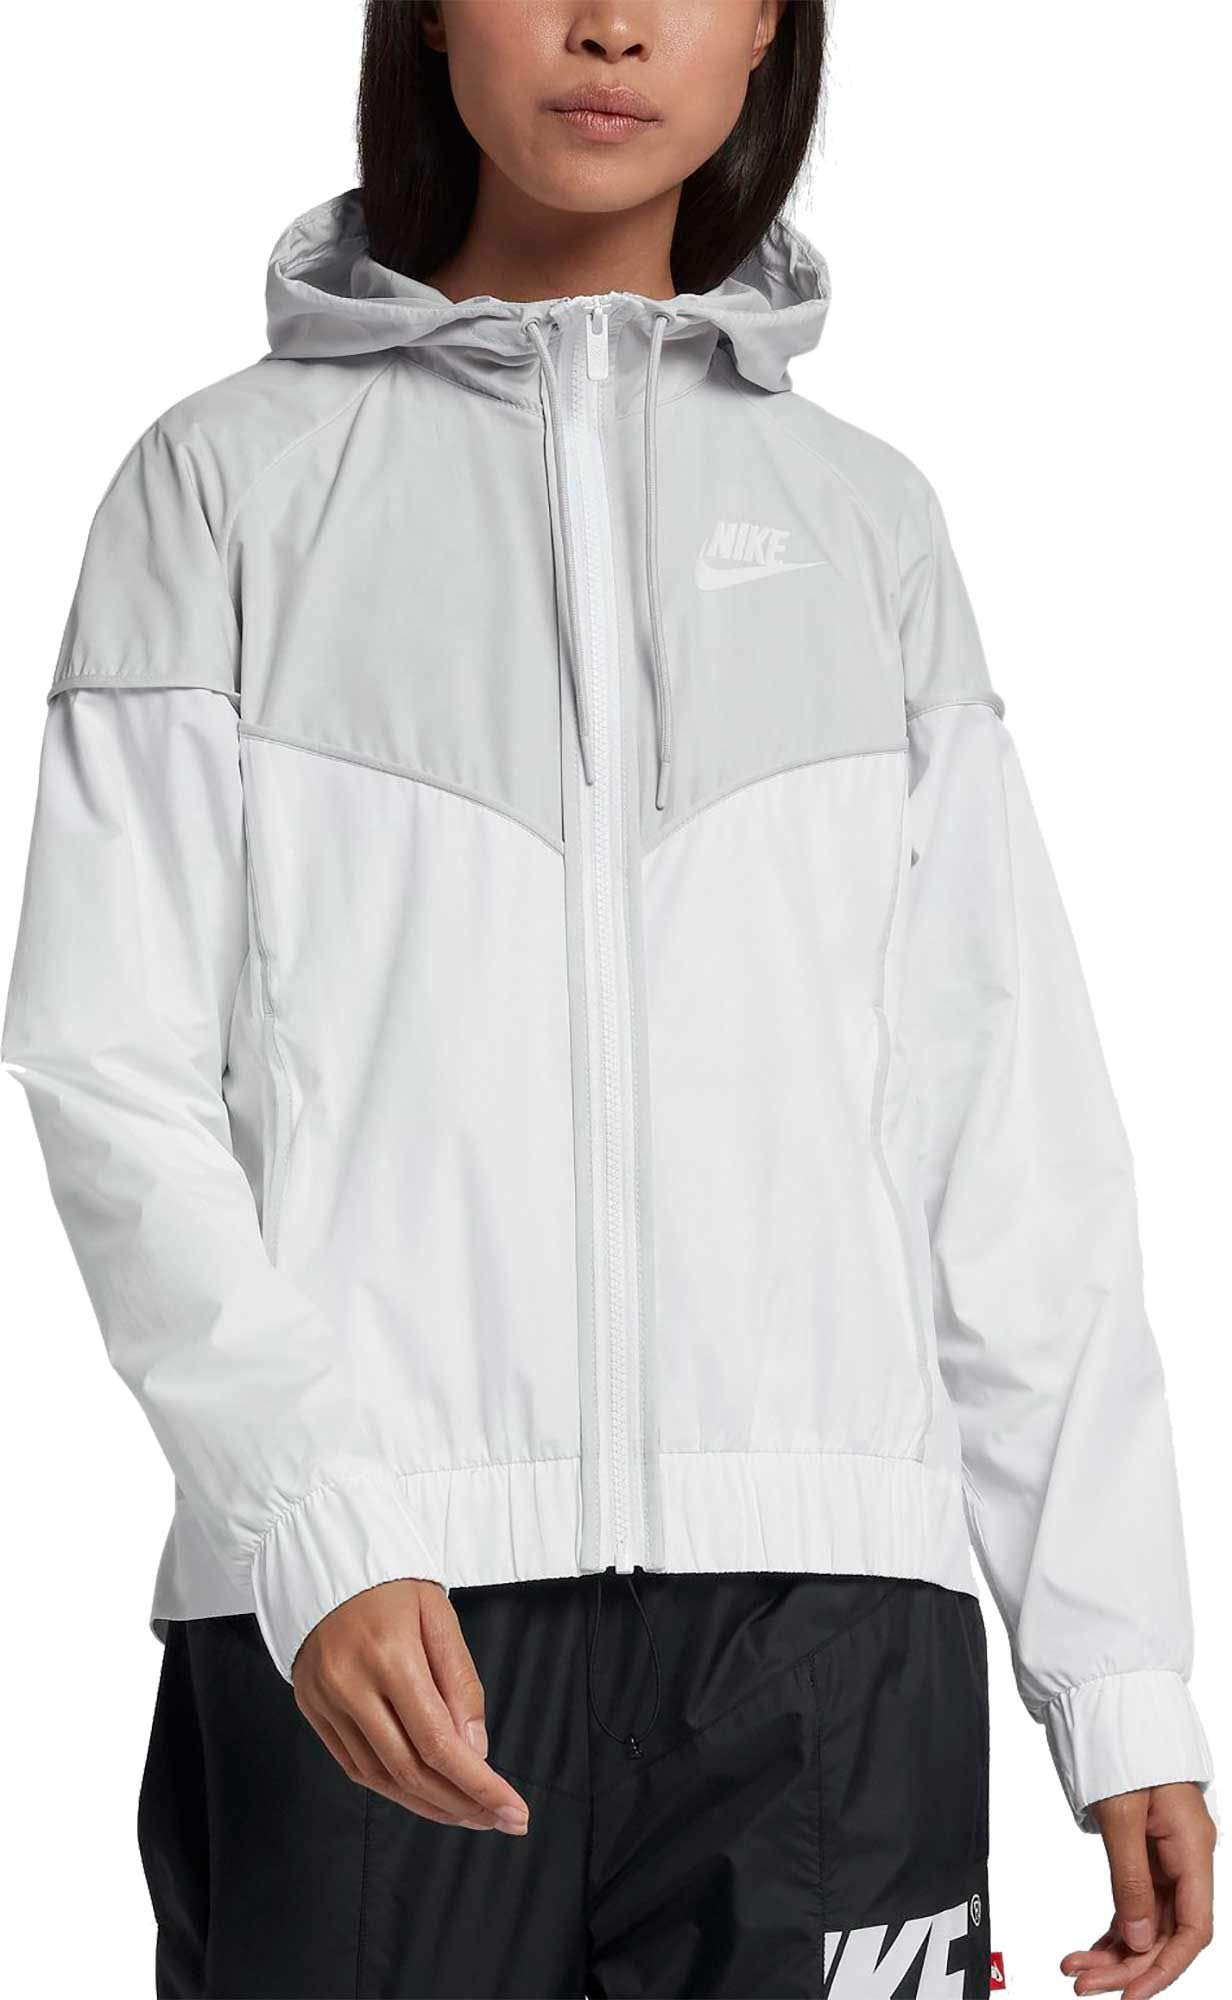 Nike Women's Sportswear Windrunner Jacket (Vast Grey, X-Small)